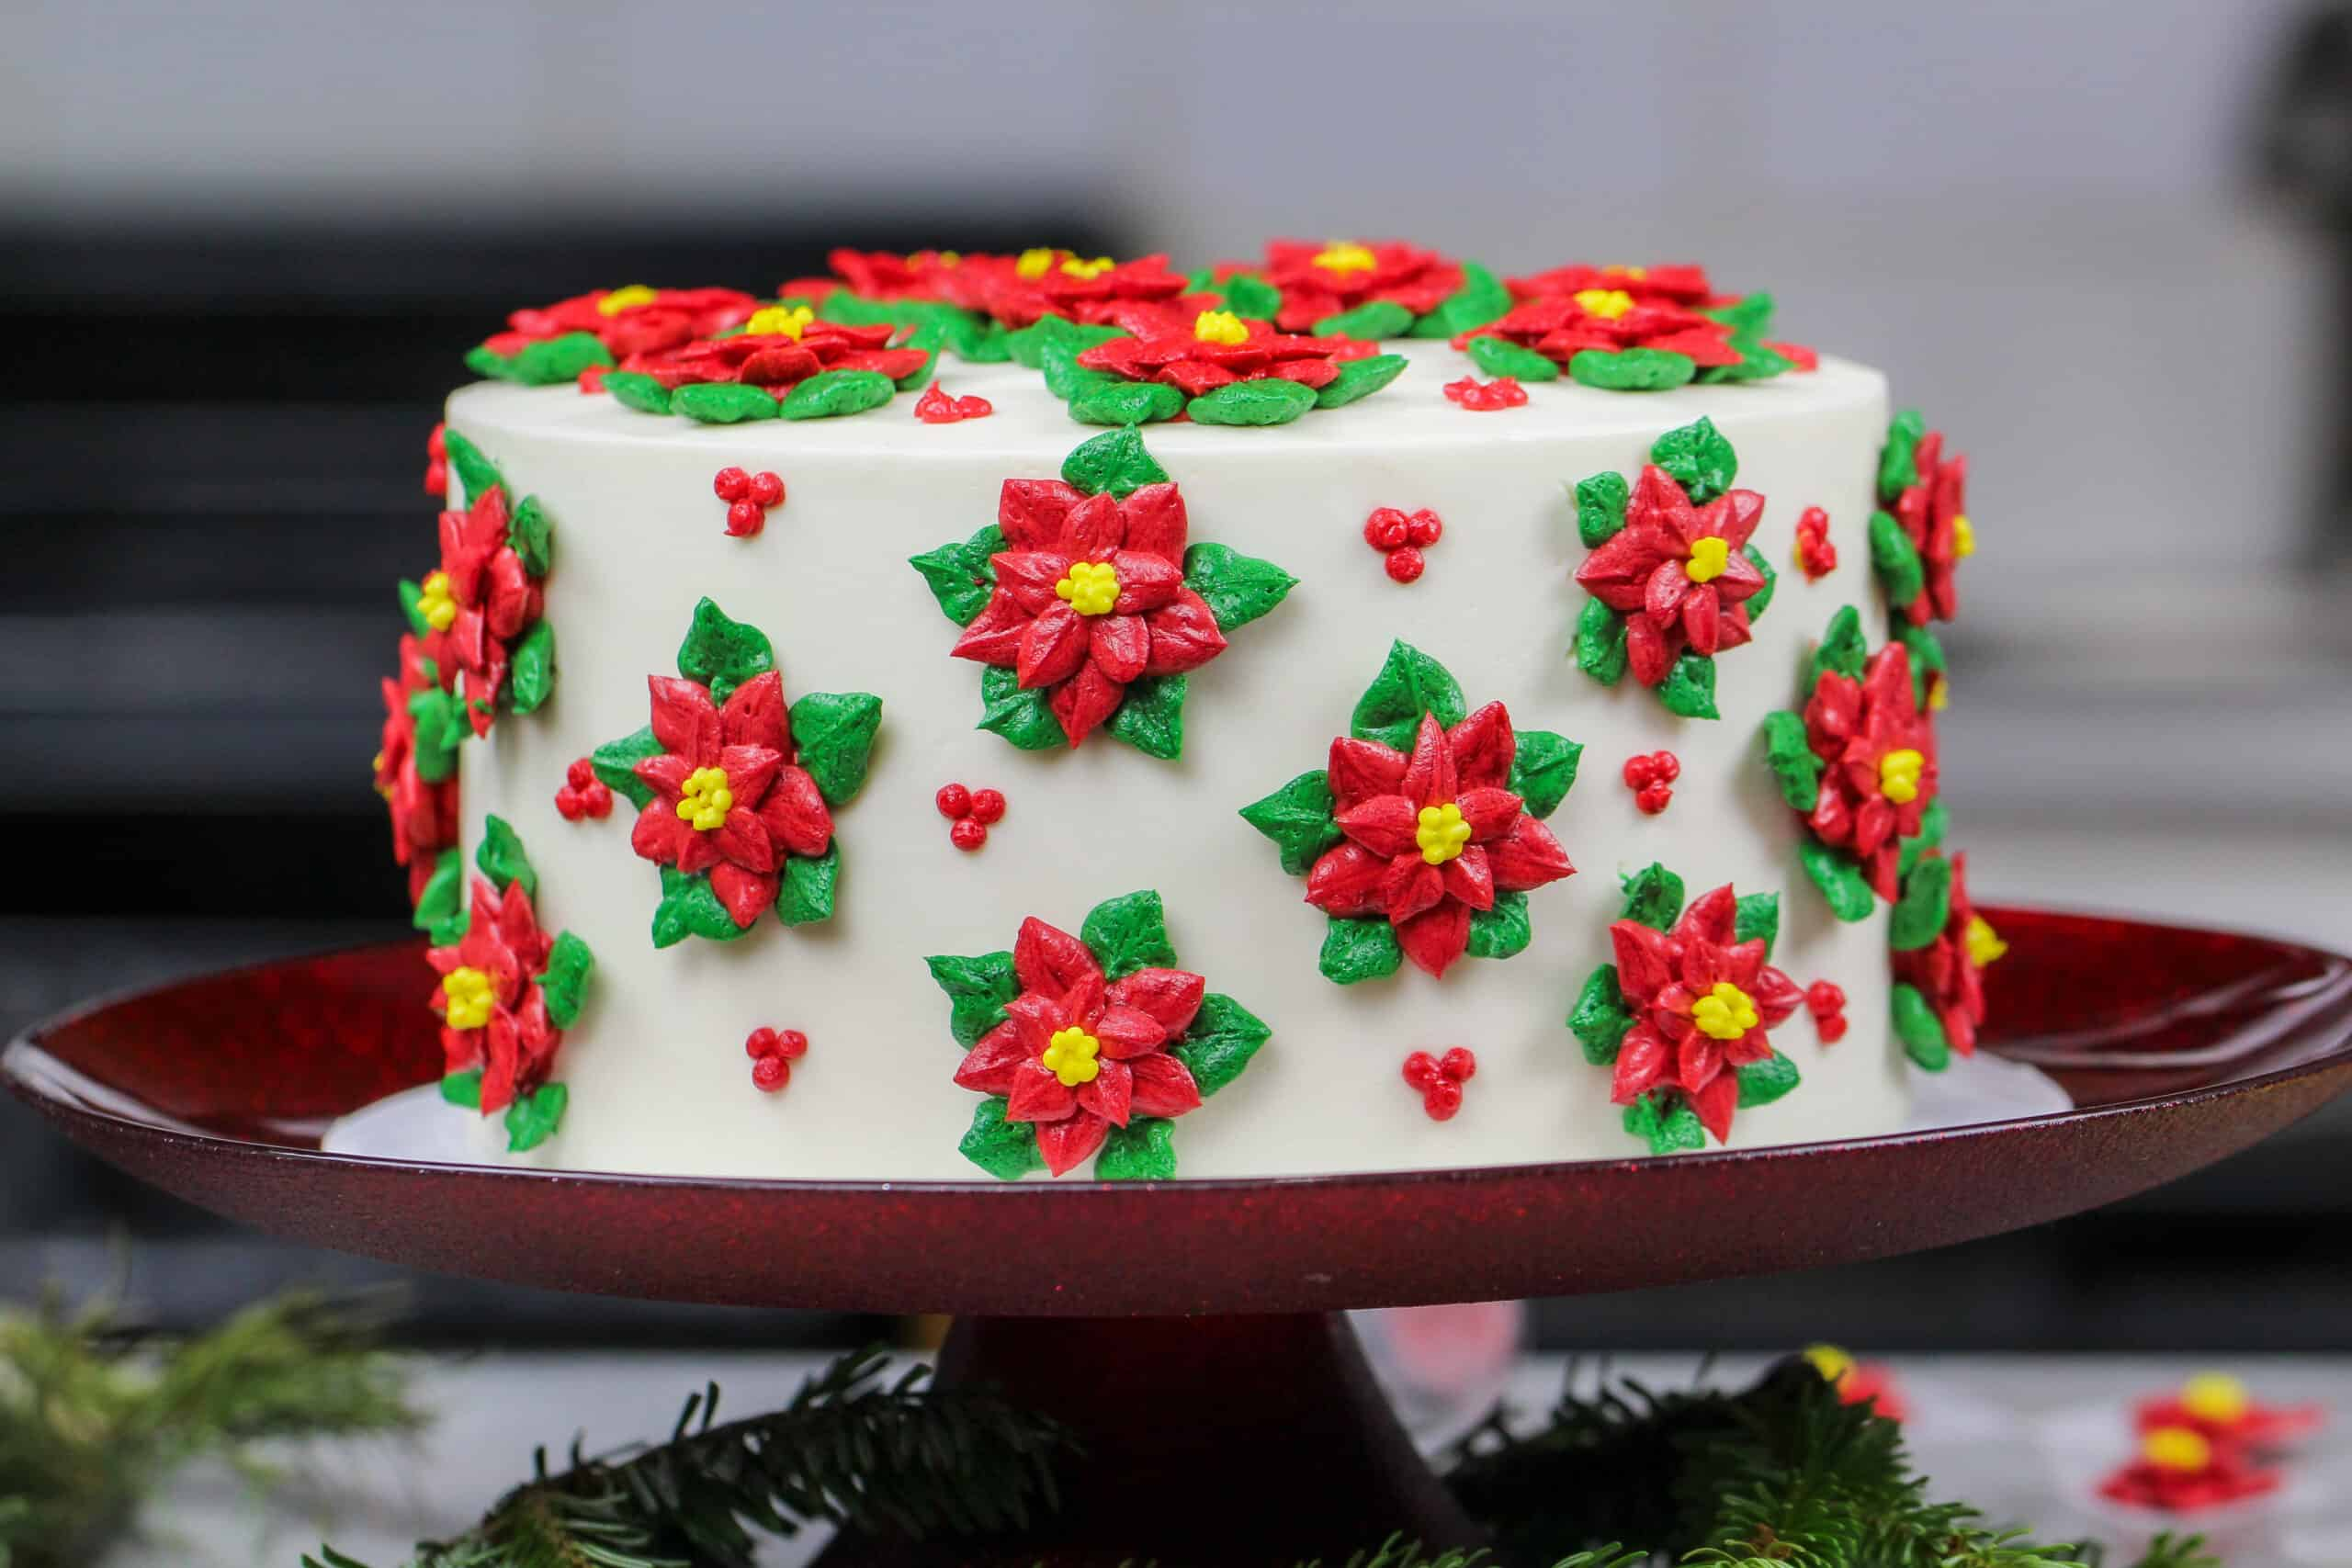 image of poinsettia cake made with red and green buttercream